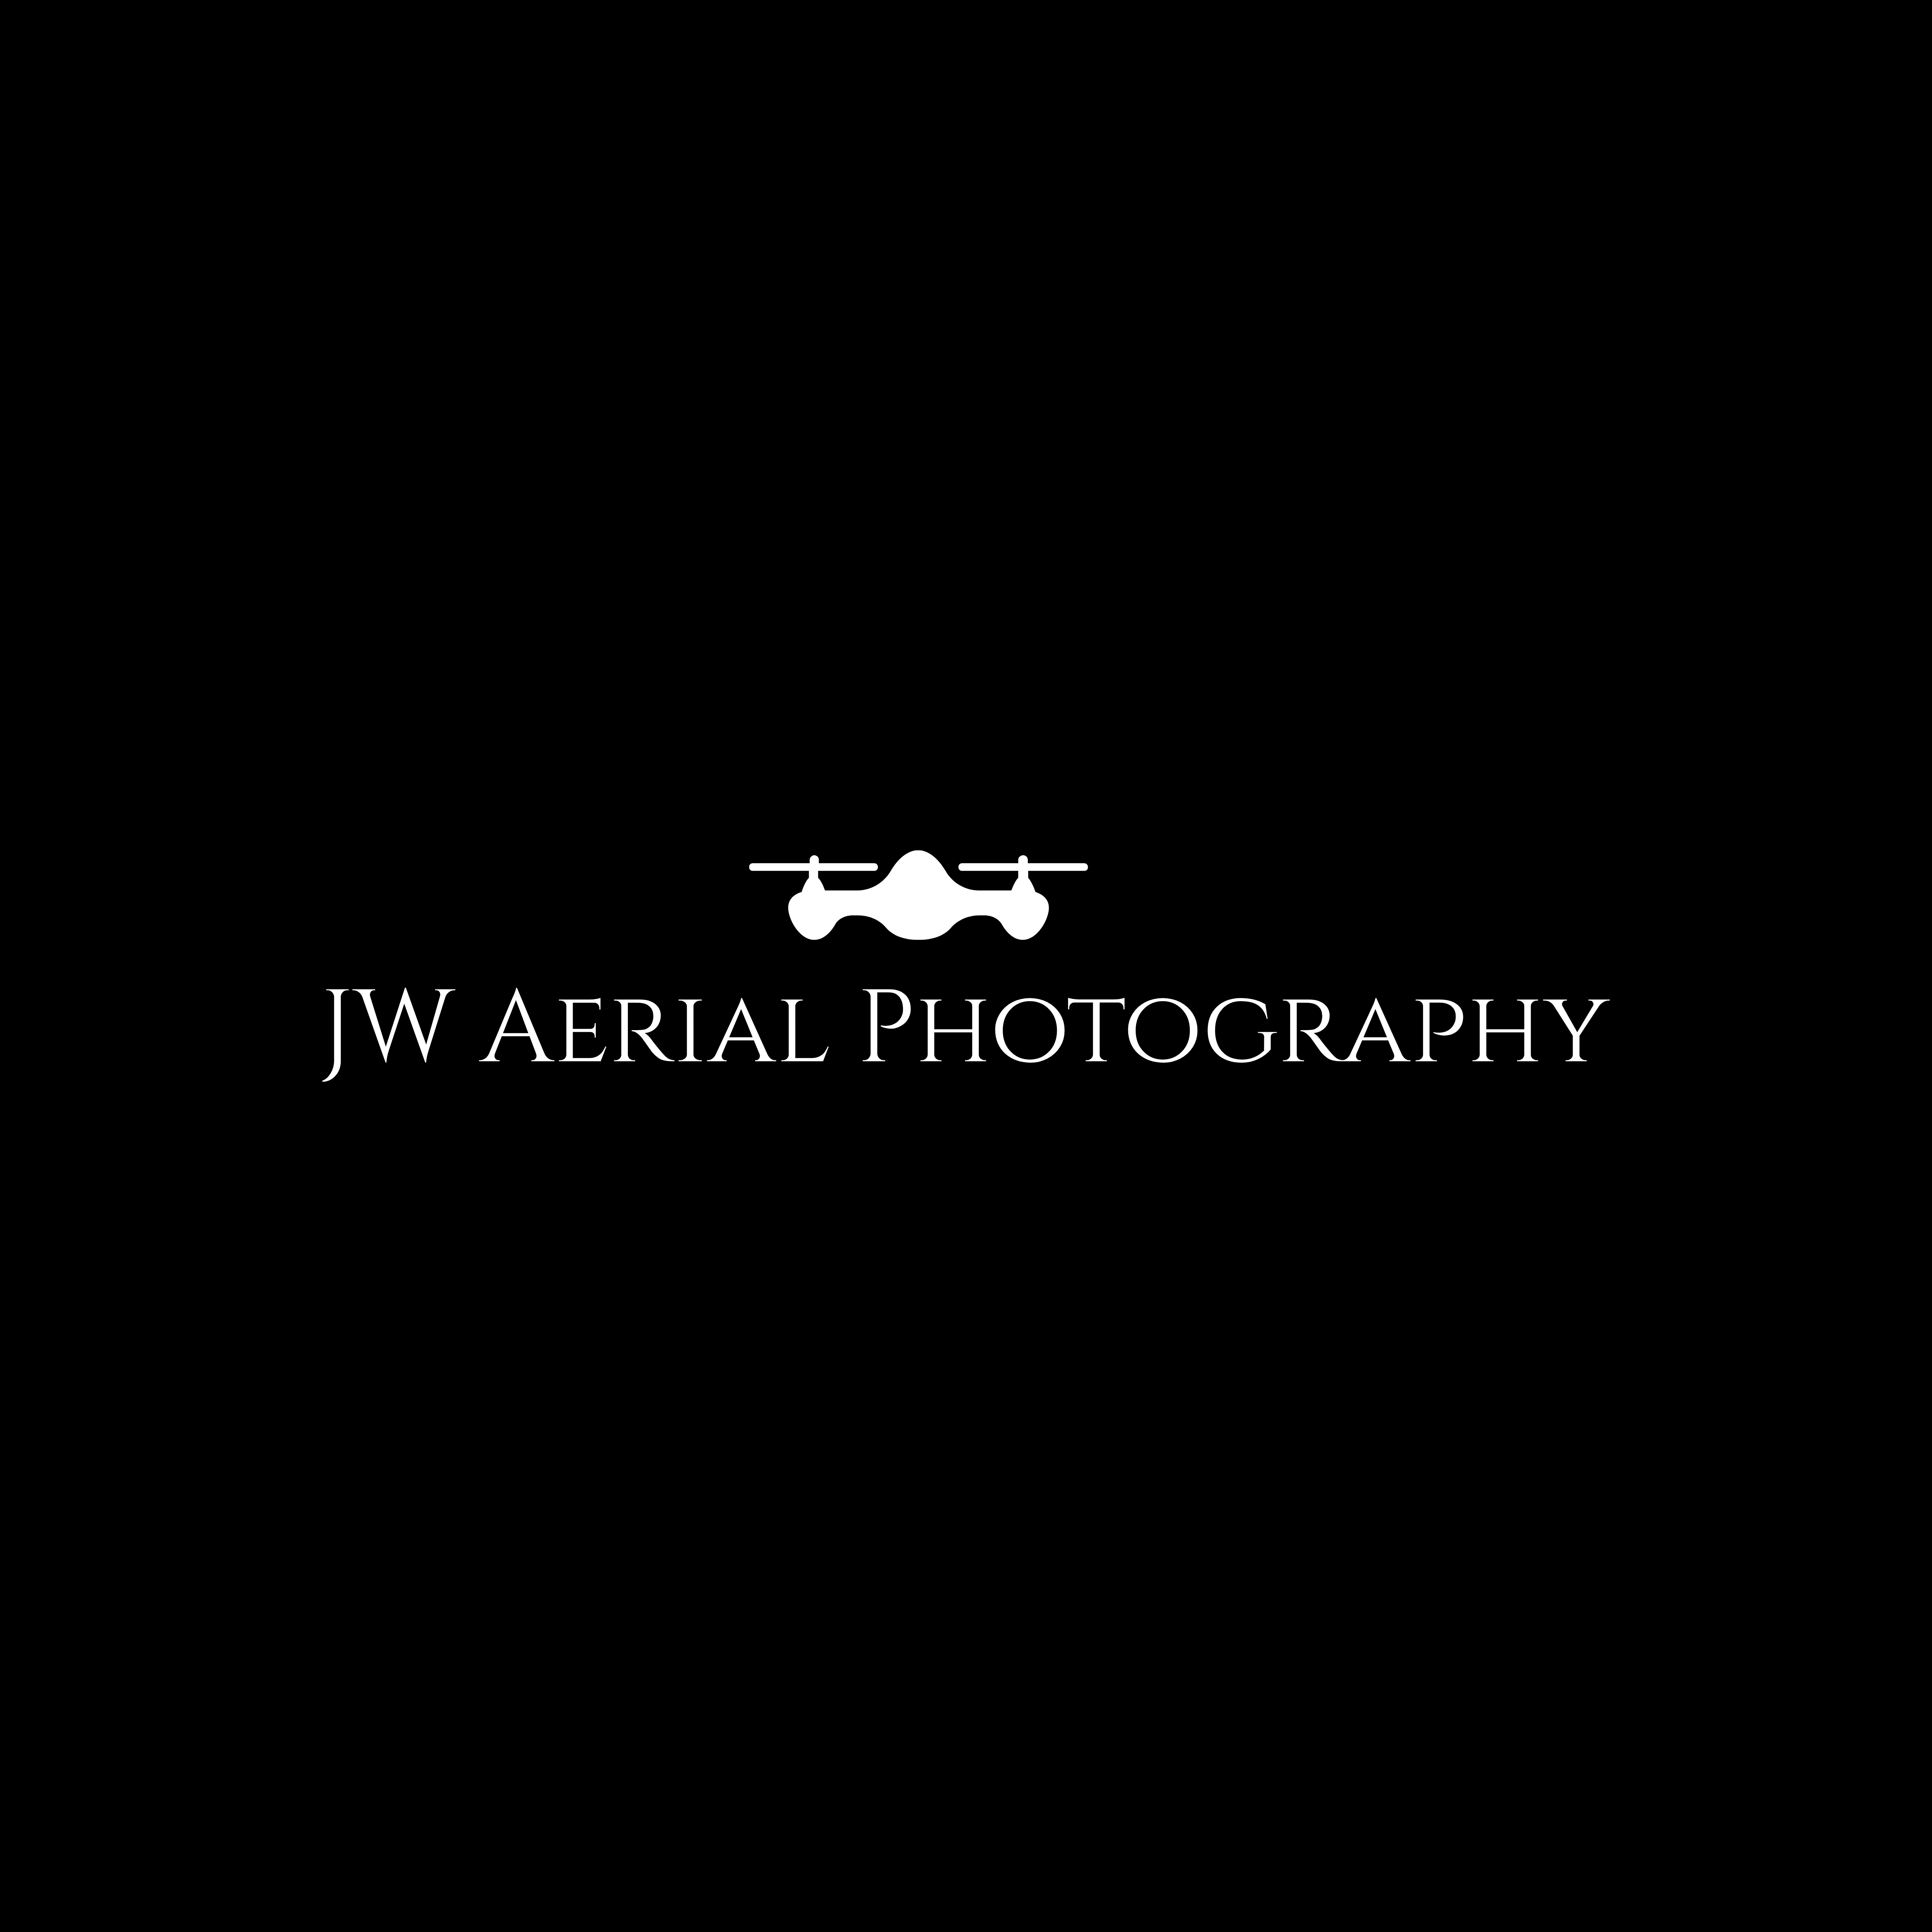 JW Aerial Photography